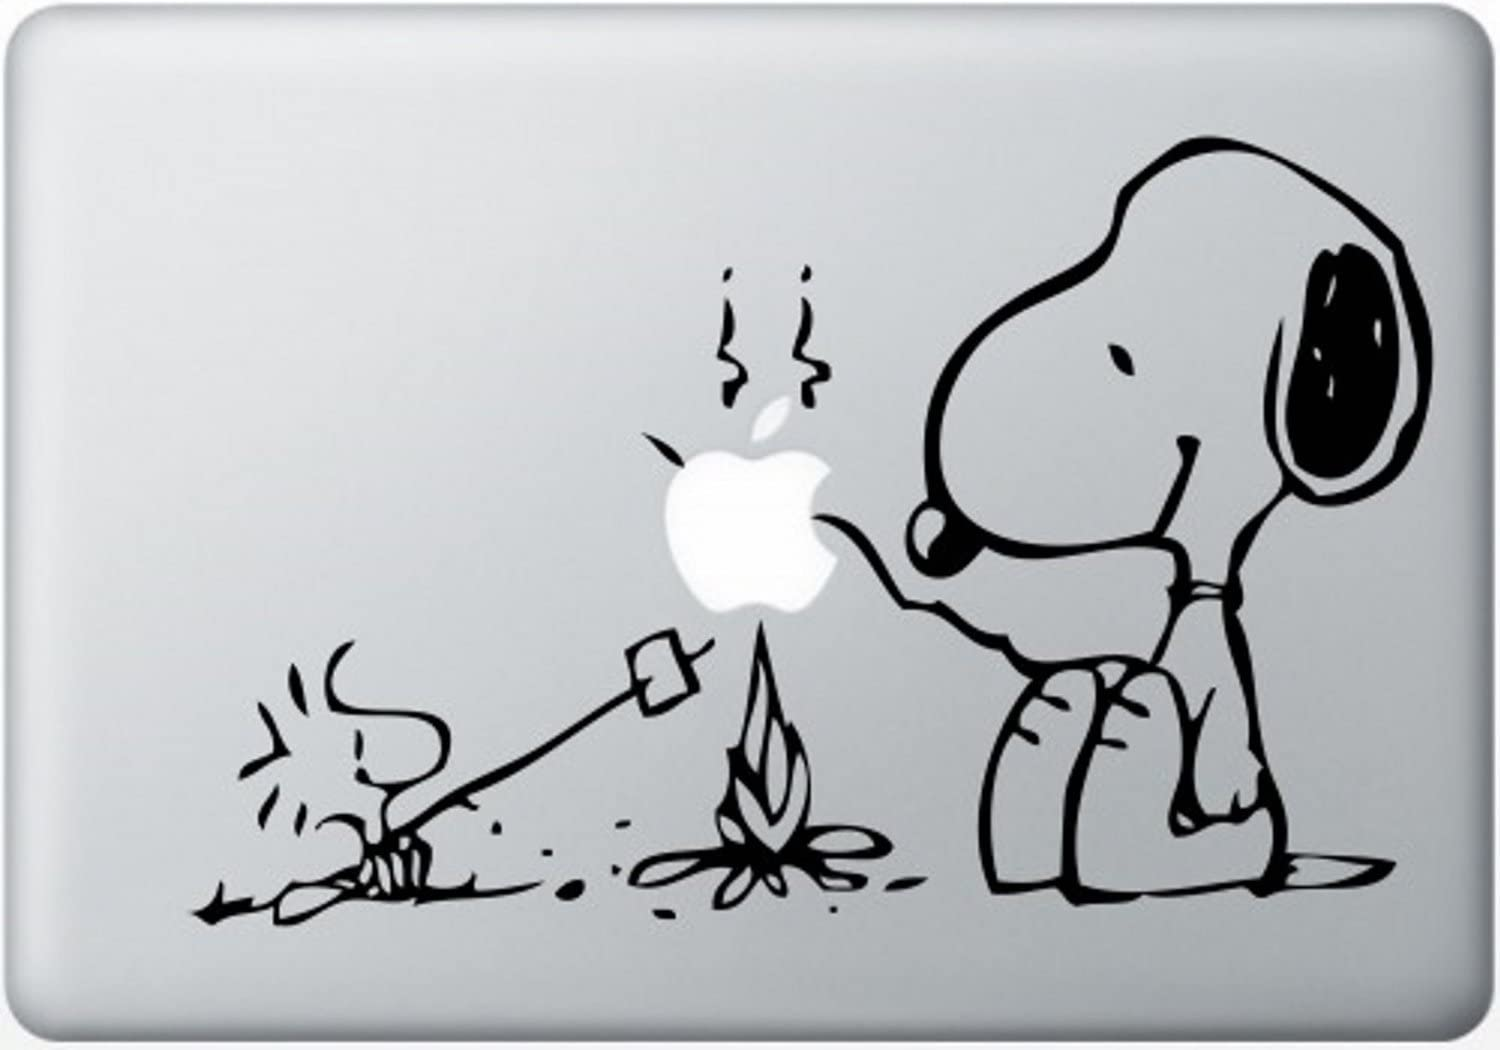 Barbecue Macbook Decals Macbook Pro Decal Stickers Mac Air for Apple Macbook 13 15 17 Inch